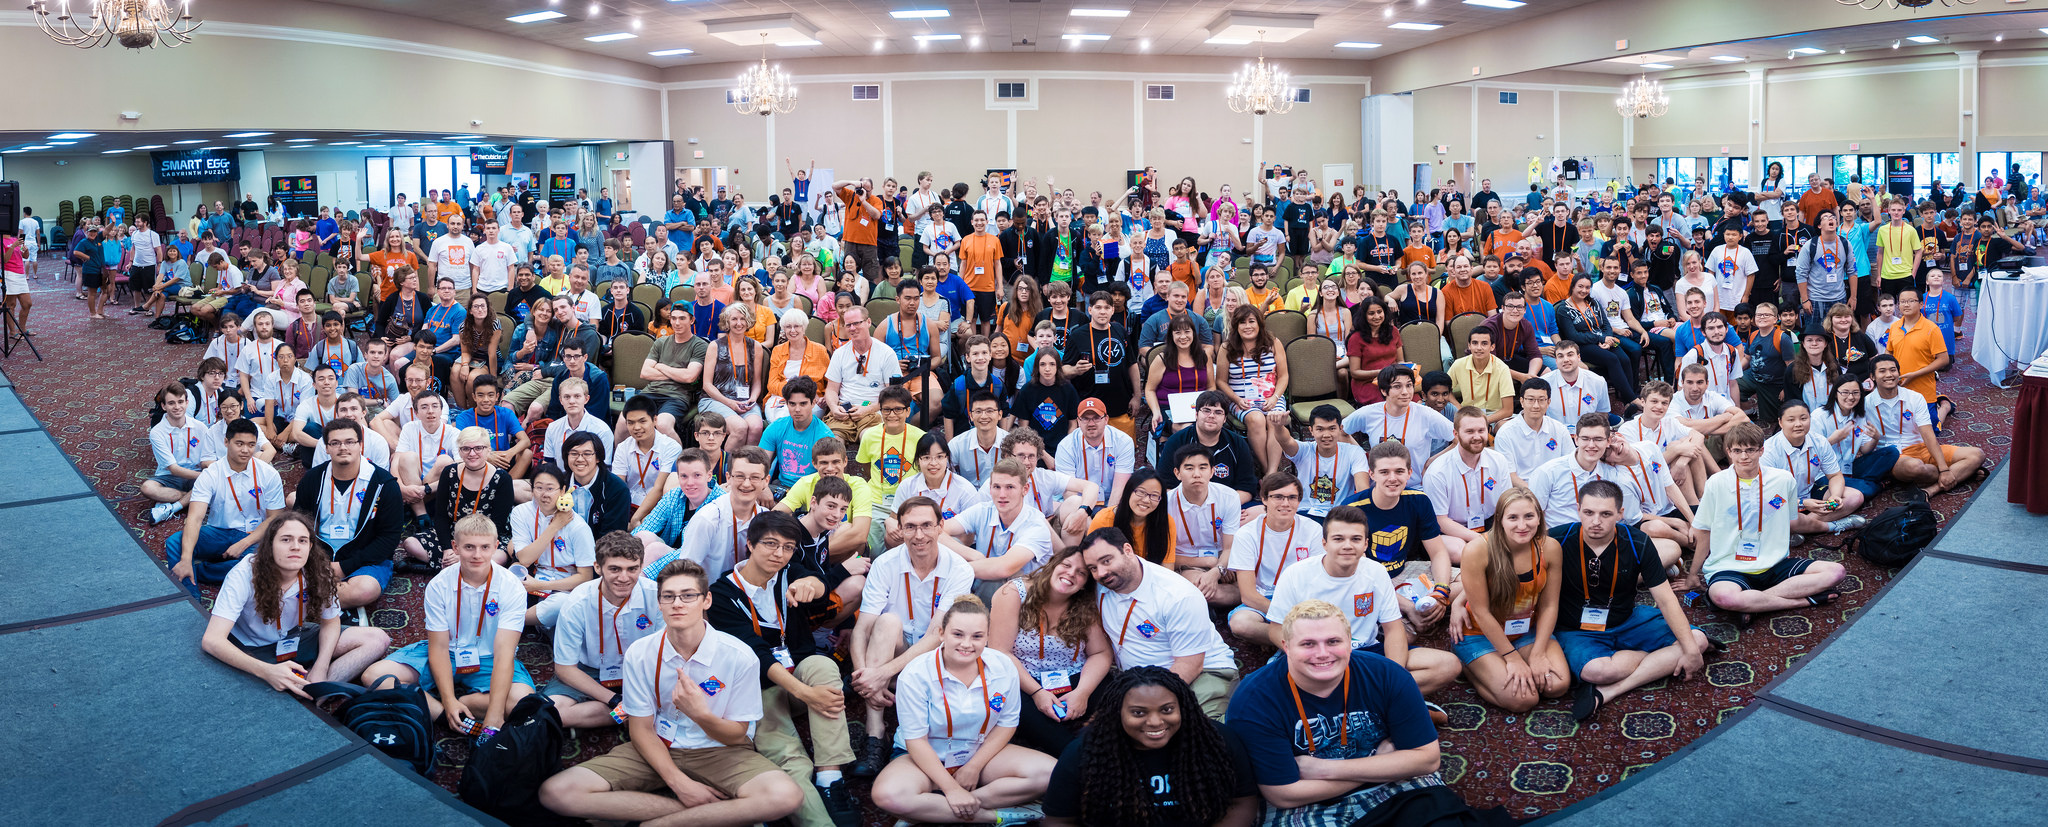 Competitors, spectators, and staff at Nationals 2015